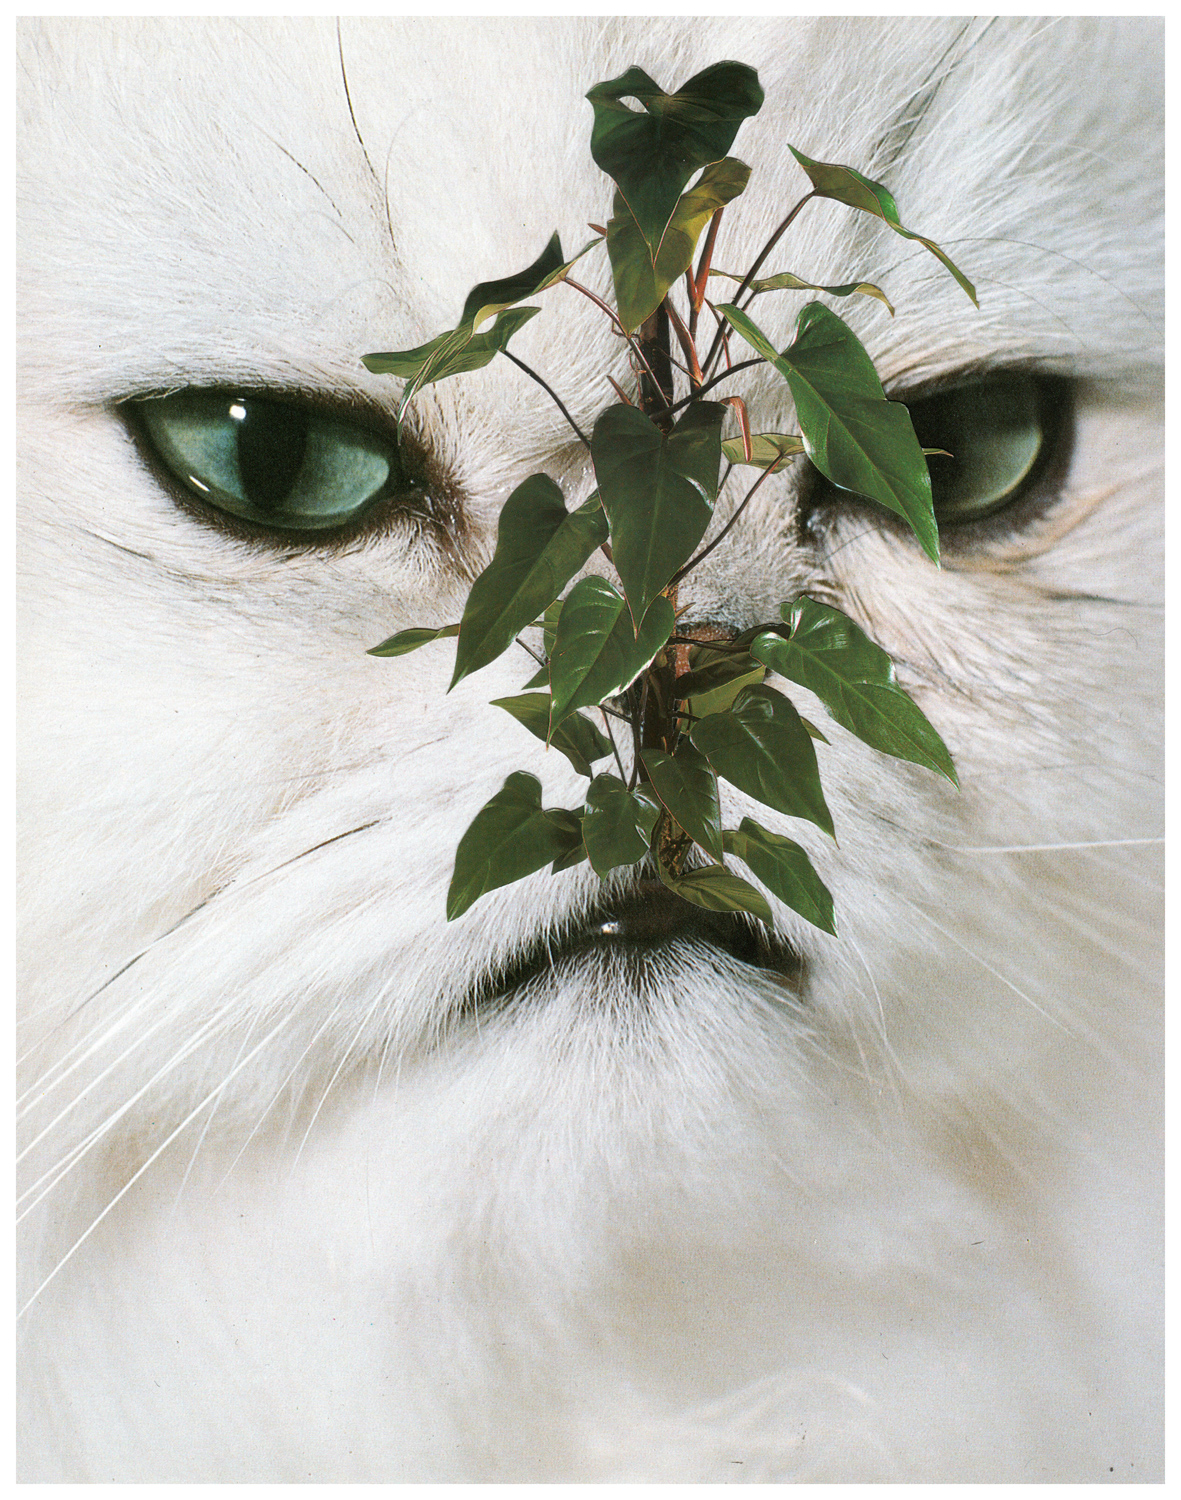 Photomontage - Stephen Eichhorn - Cats & Plants - House Plant, 2014, collage on archival paper